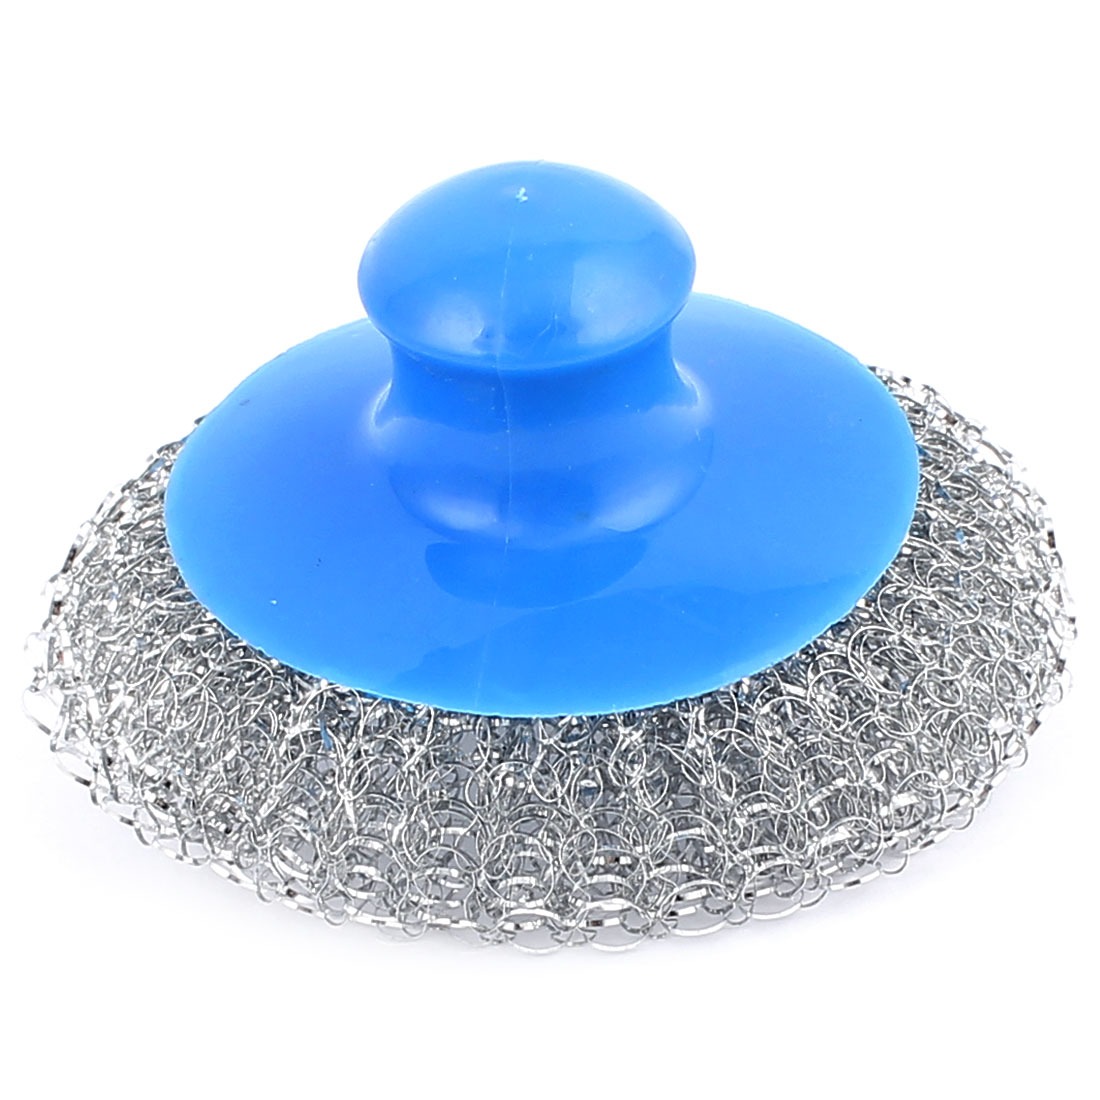 Cookware Pot Pan Bowel Stainless Steel Wire Scouring Pad Scrubber Cleaning Brush Cleaner Blue